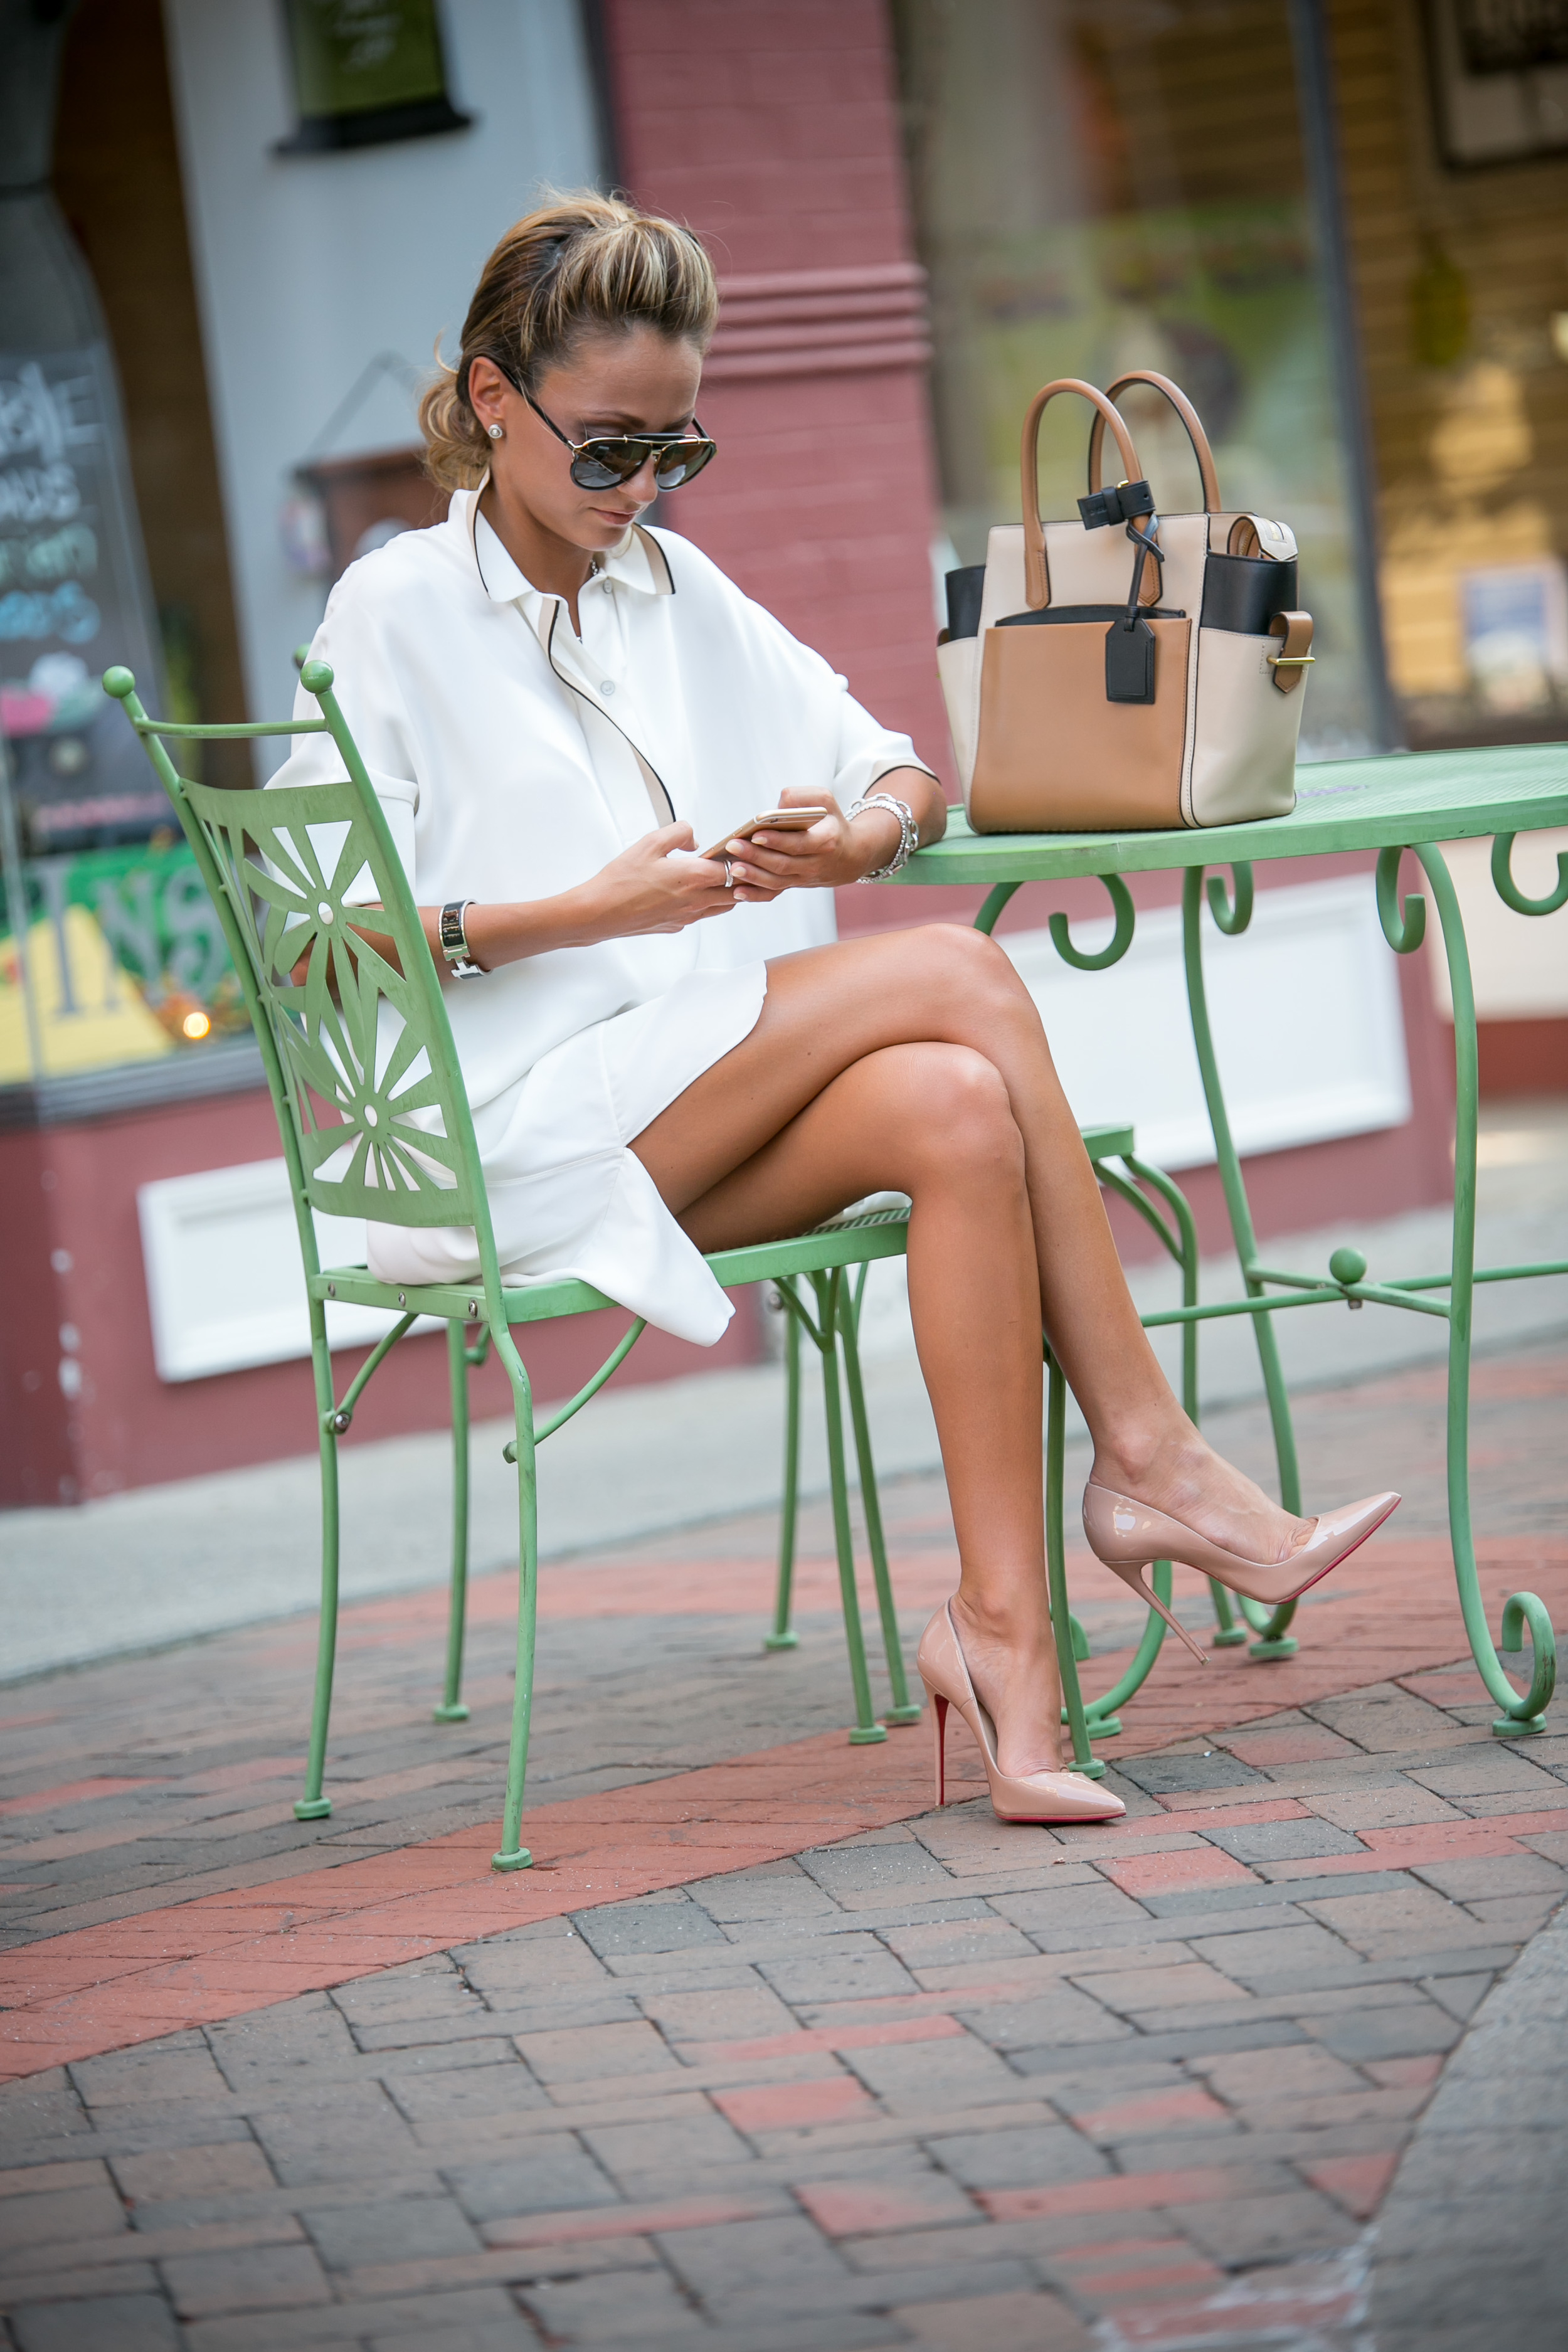 Dress: Rag & Bone |Bag: Reed Krakoff |Pumps: Christian Louboutin |Sunnies: Marc Jacobs     Dino Petrocelli Photography